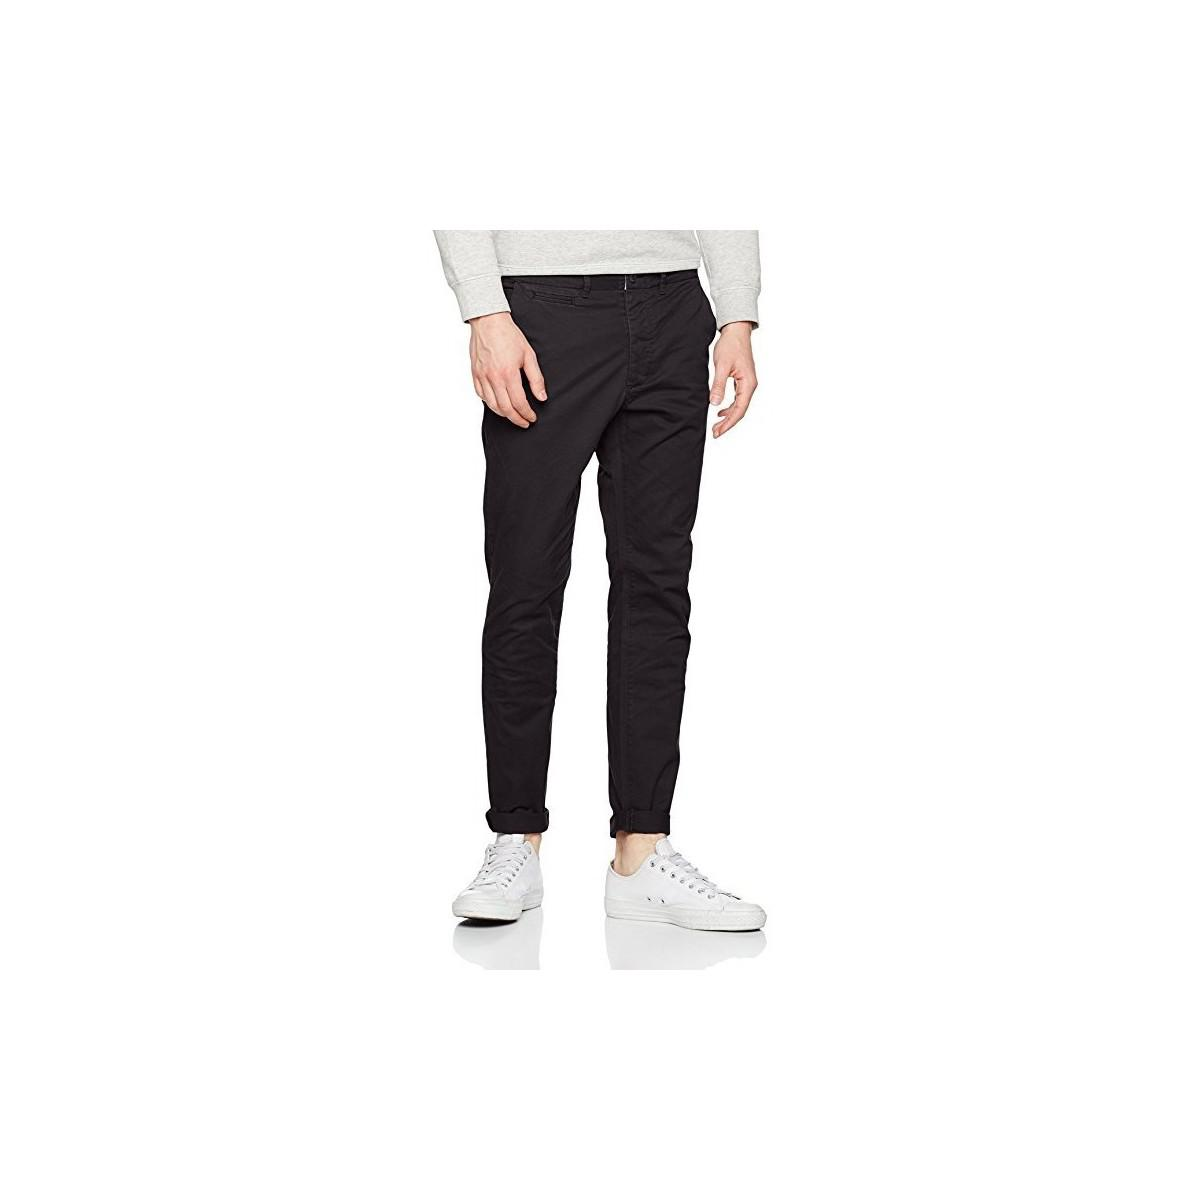 f71f568884 Jack   Jones. Pantalon Chino Jjimarco Jjenzo Black Ww420 Noos Men s Trousers  ...